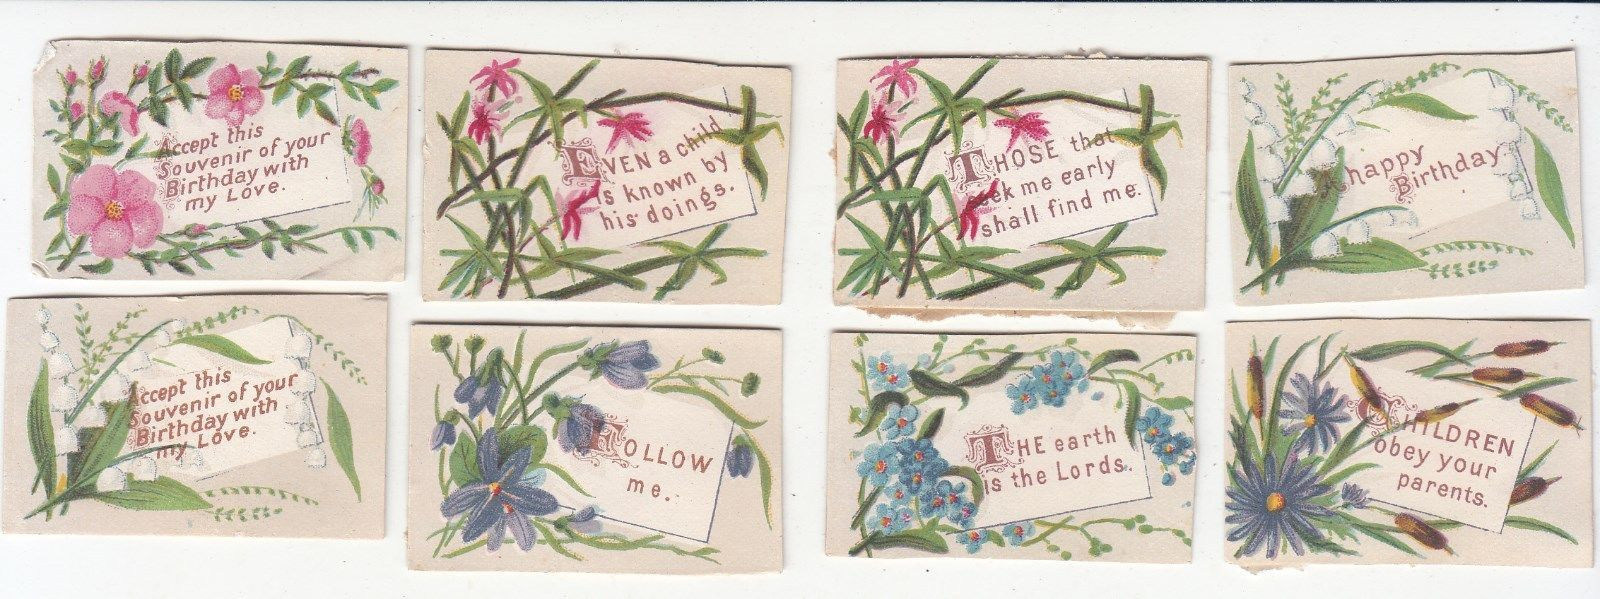 8 mini cards with sayings greetings religious victorian cards c 8 mini cards with sayings greetings religious victorian cards c 1880s ebay m4hsunfo